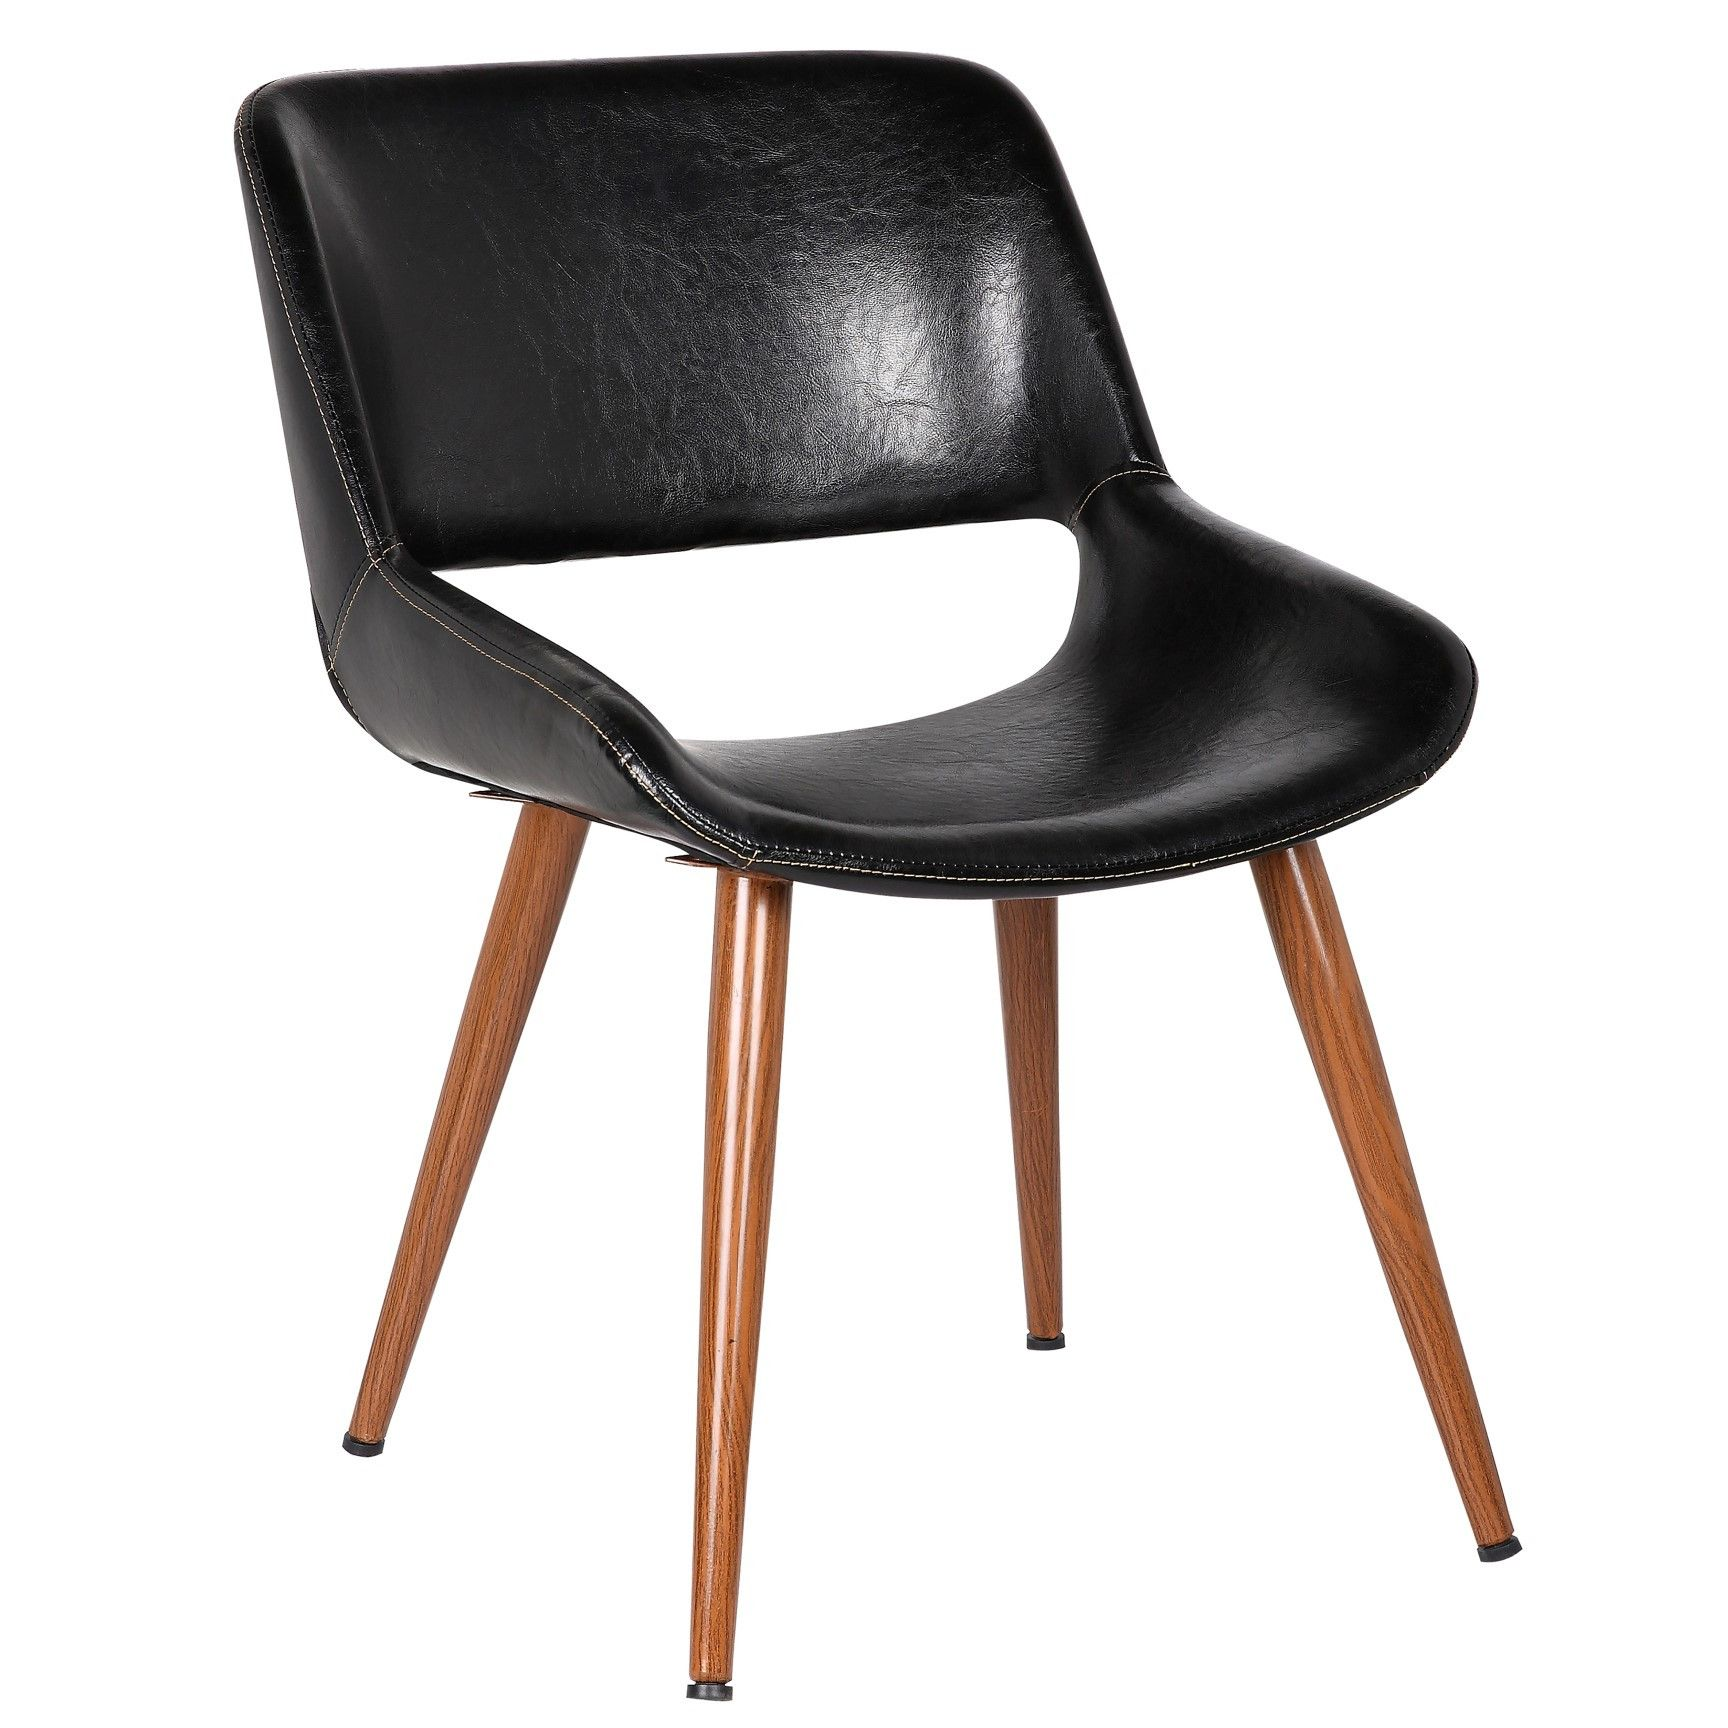 Shop Wayfair For Accent Chairs To Match Every Style And